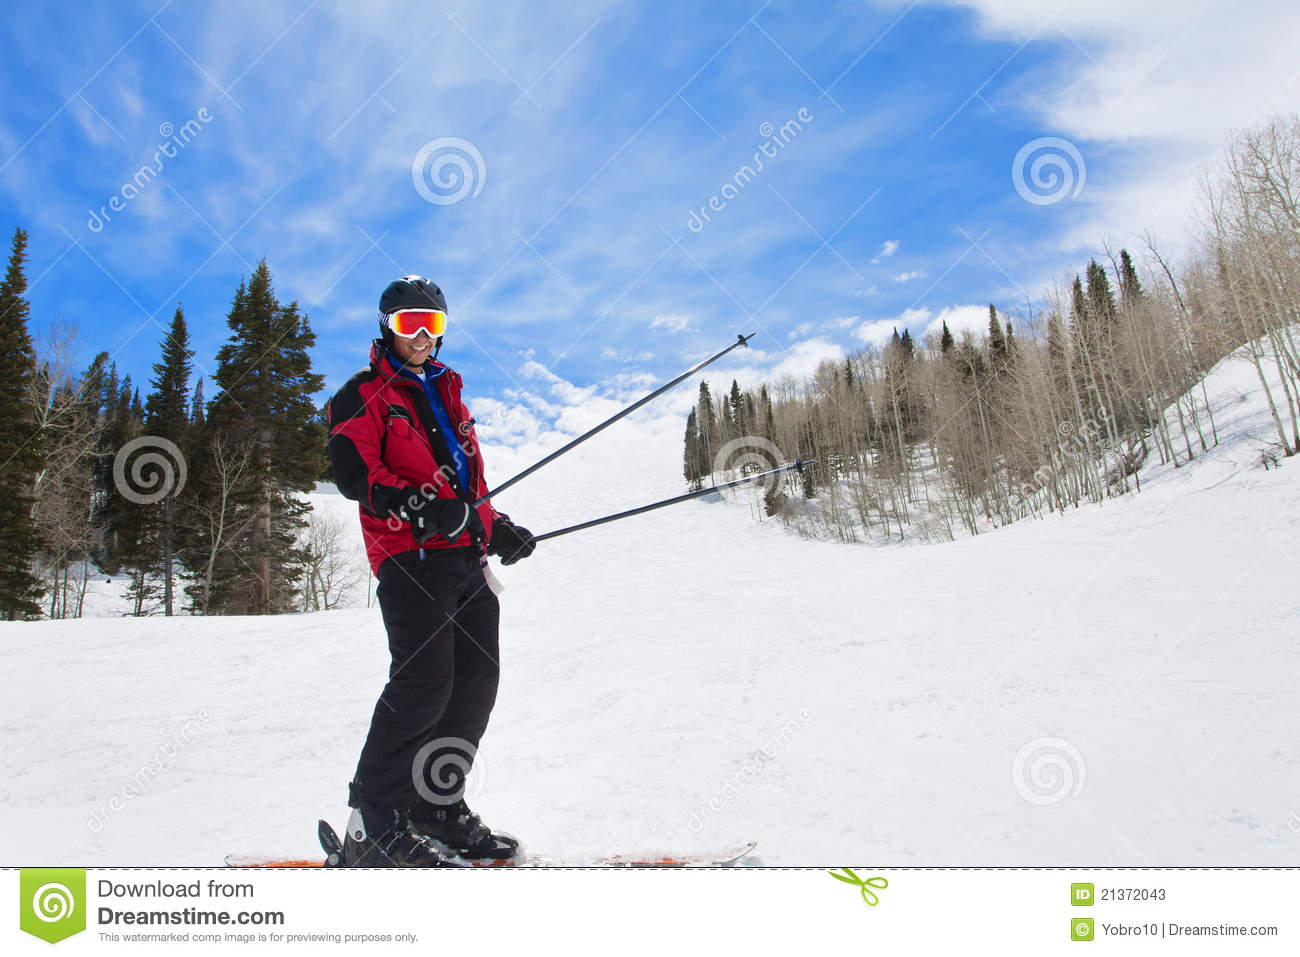 Man Having fun on the Ski Slopes